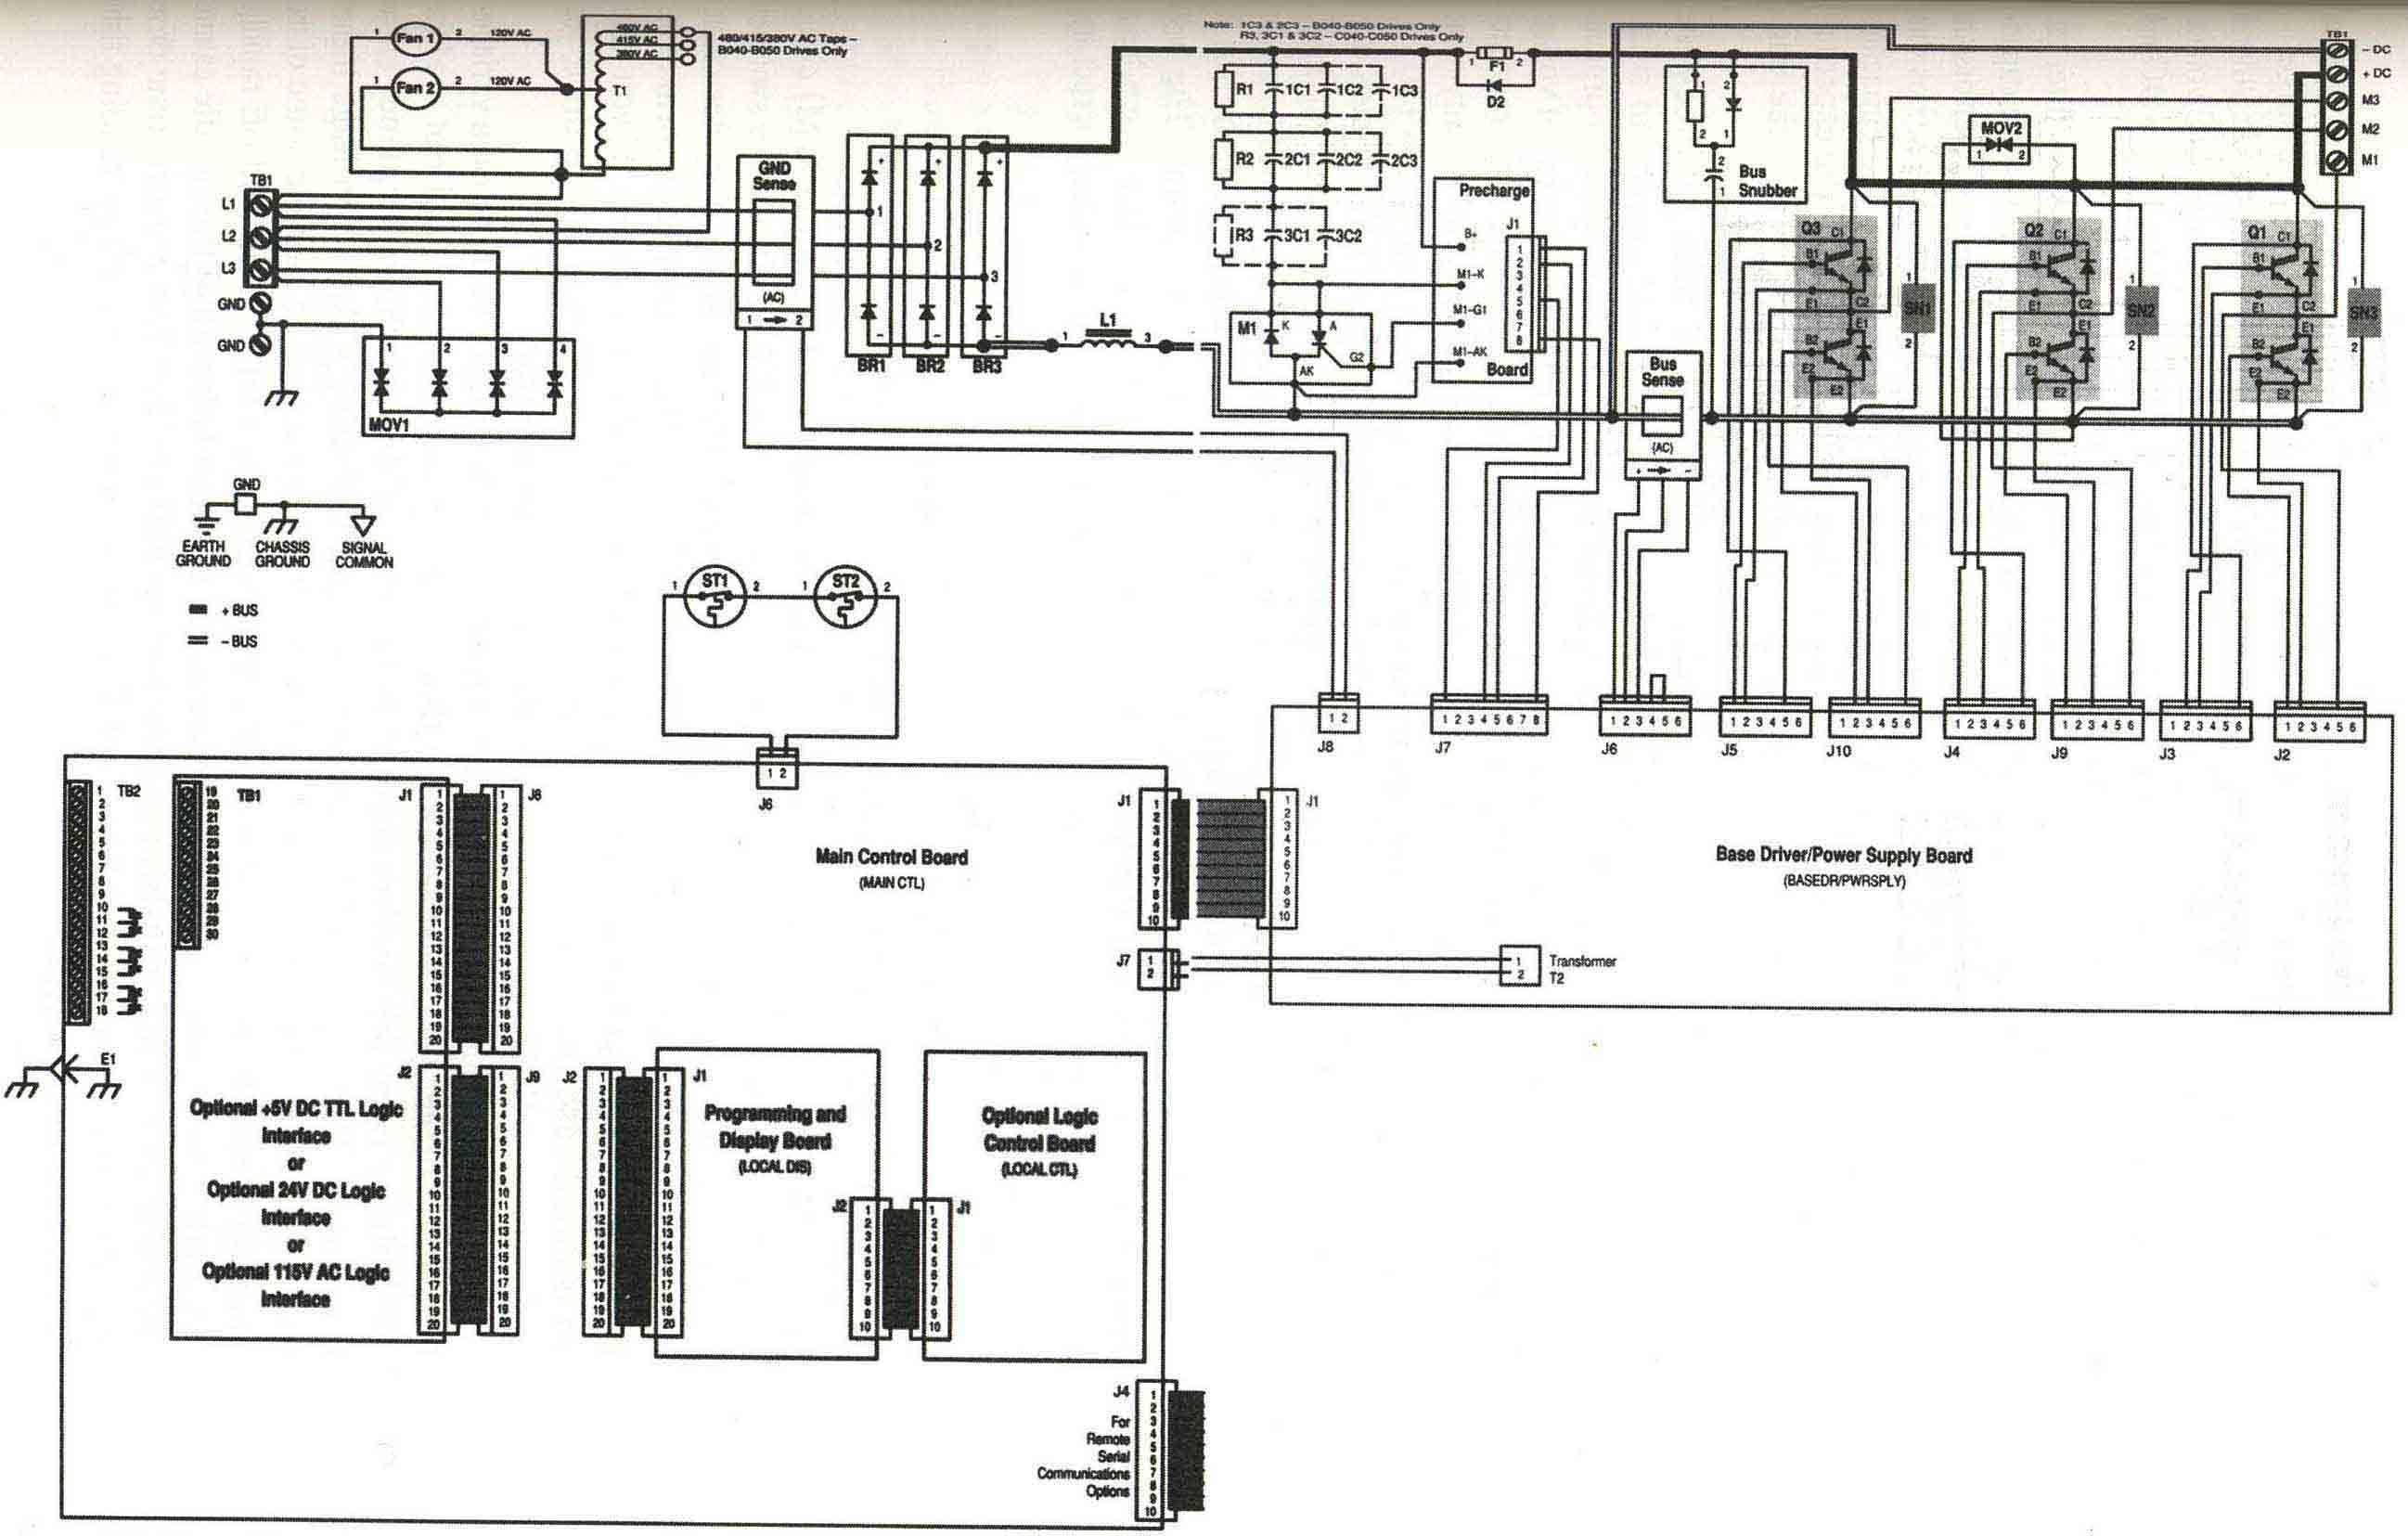 Danfoss Cp715 Wiring Diagram